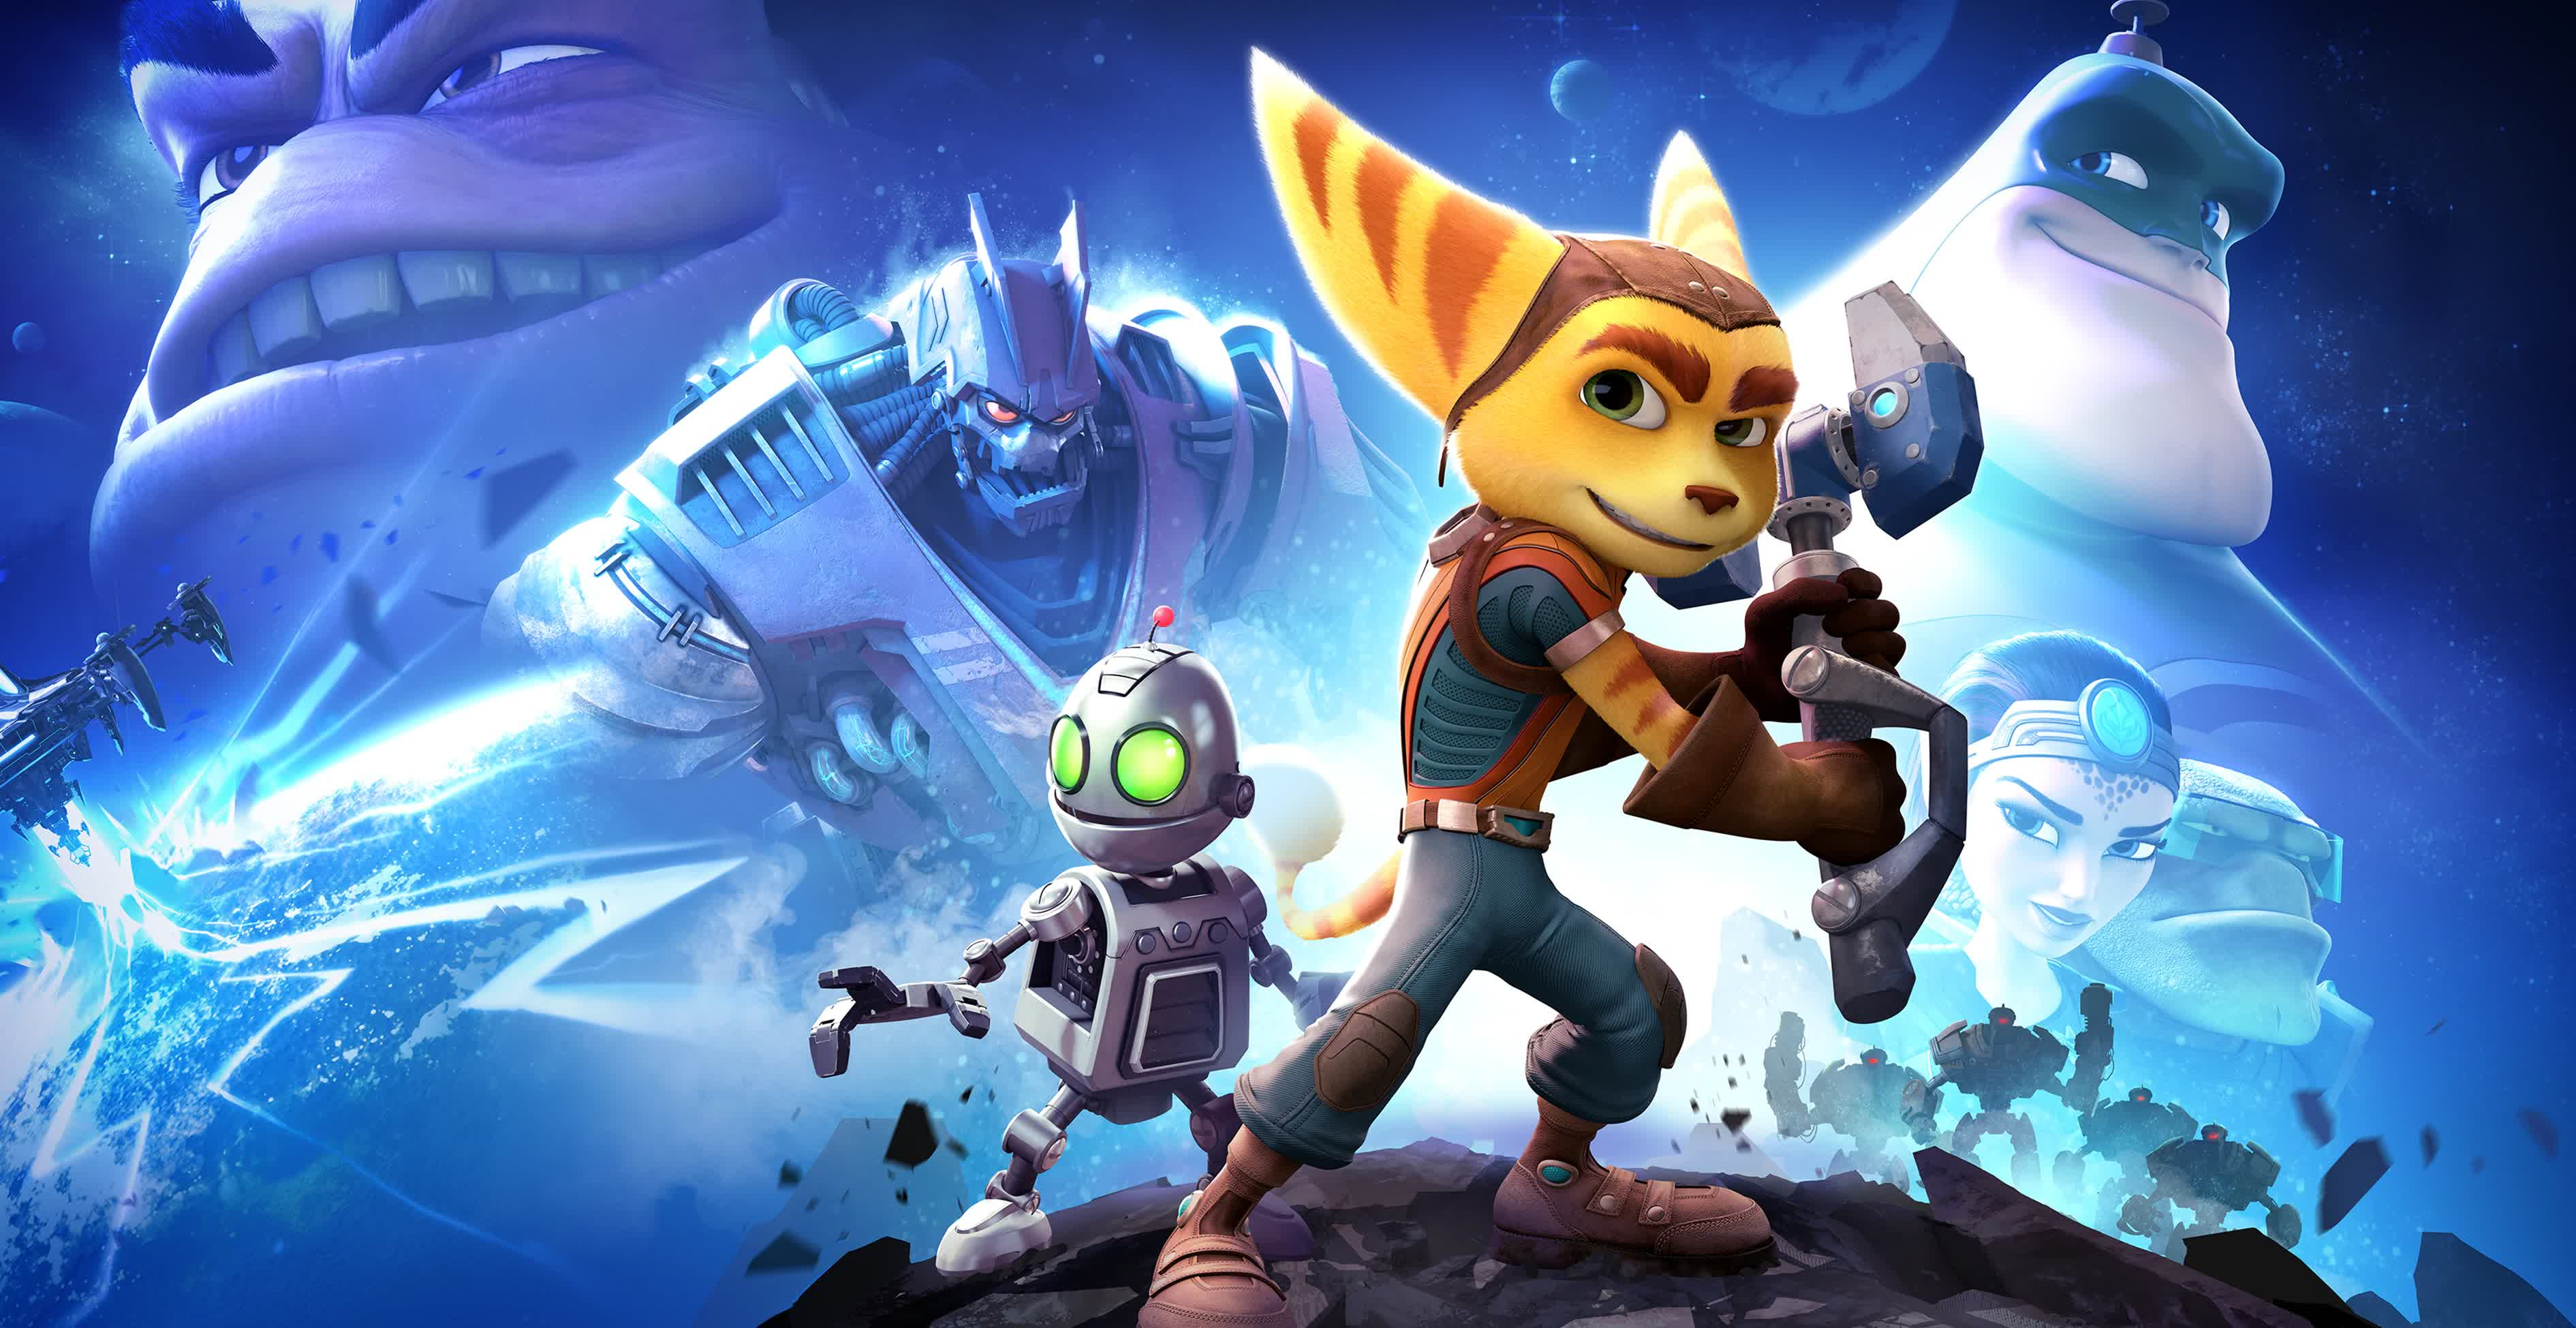 Sony is giving away a free copy of Ratchet & Clank for PS4 next month